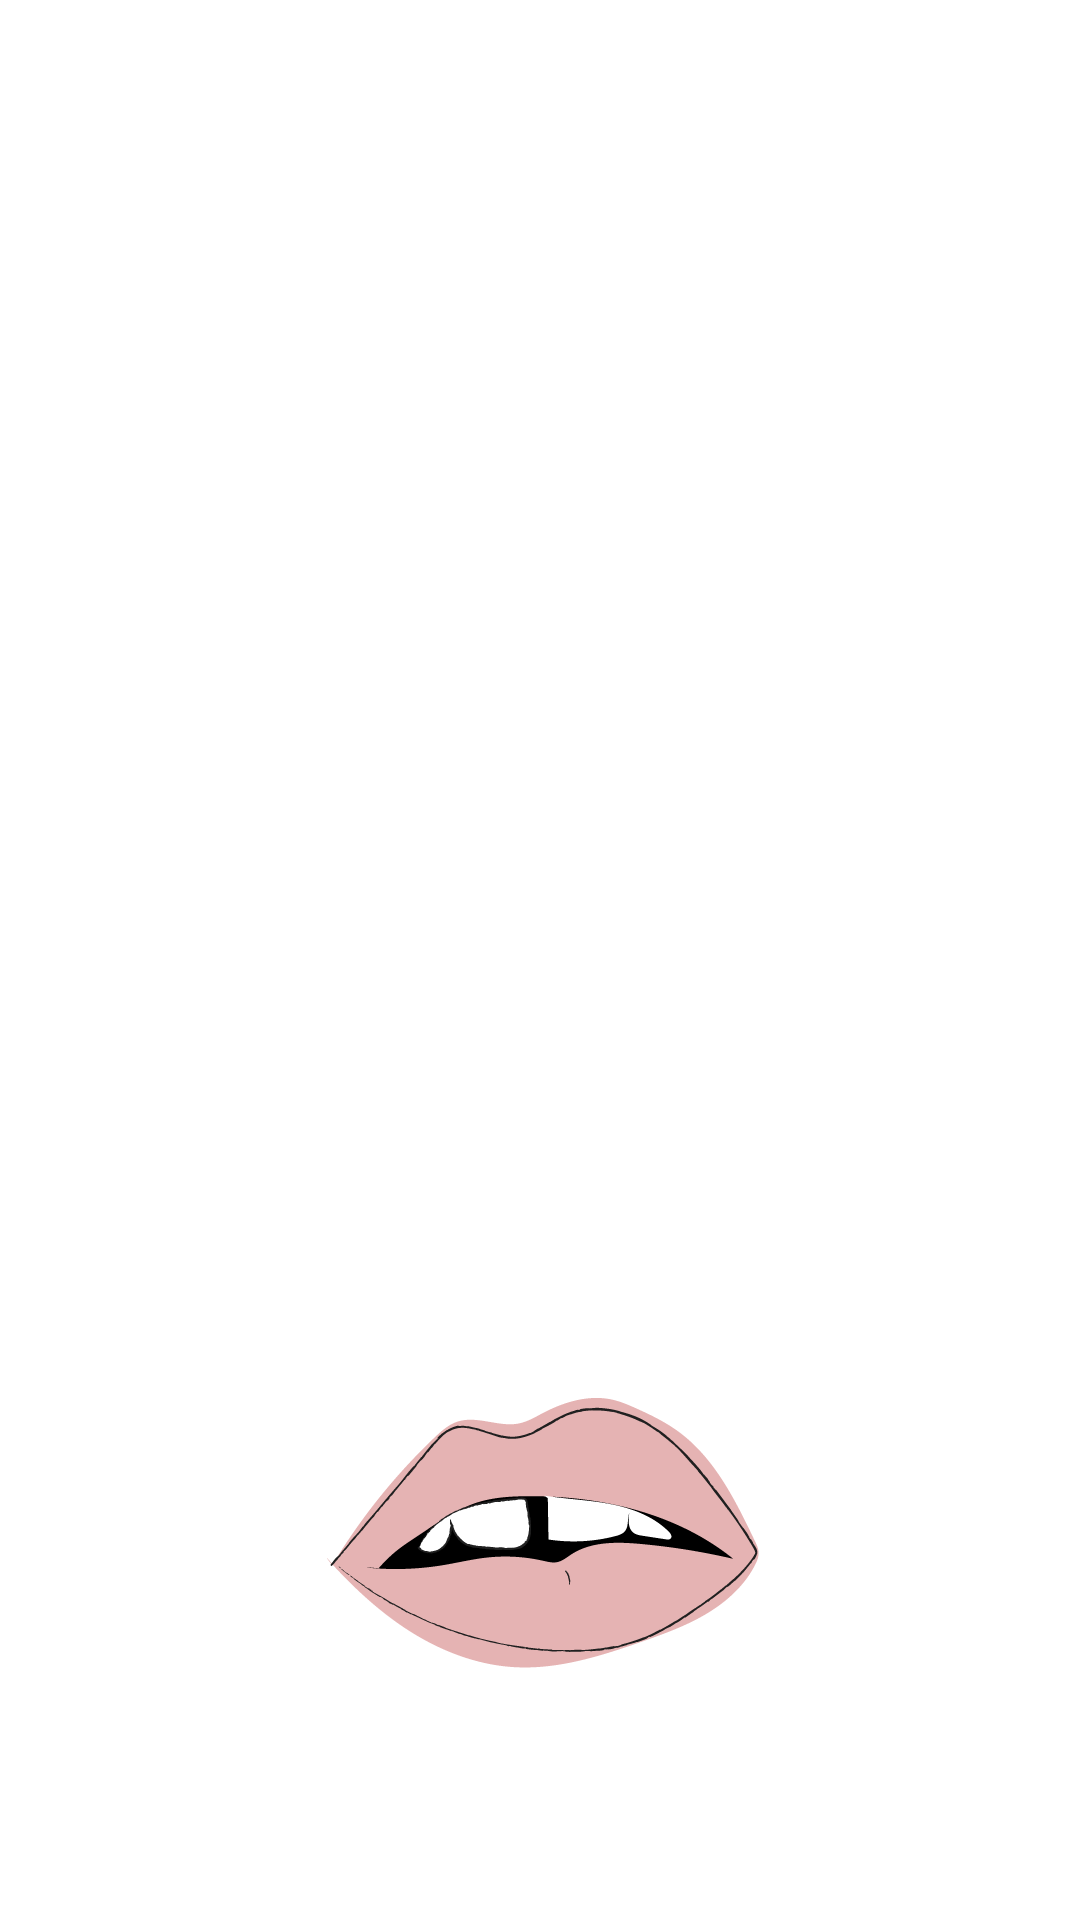 Background_001.png